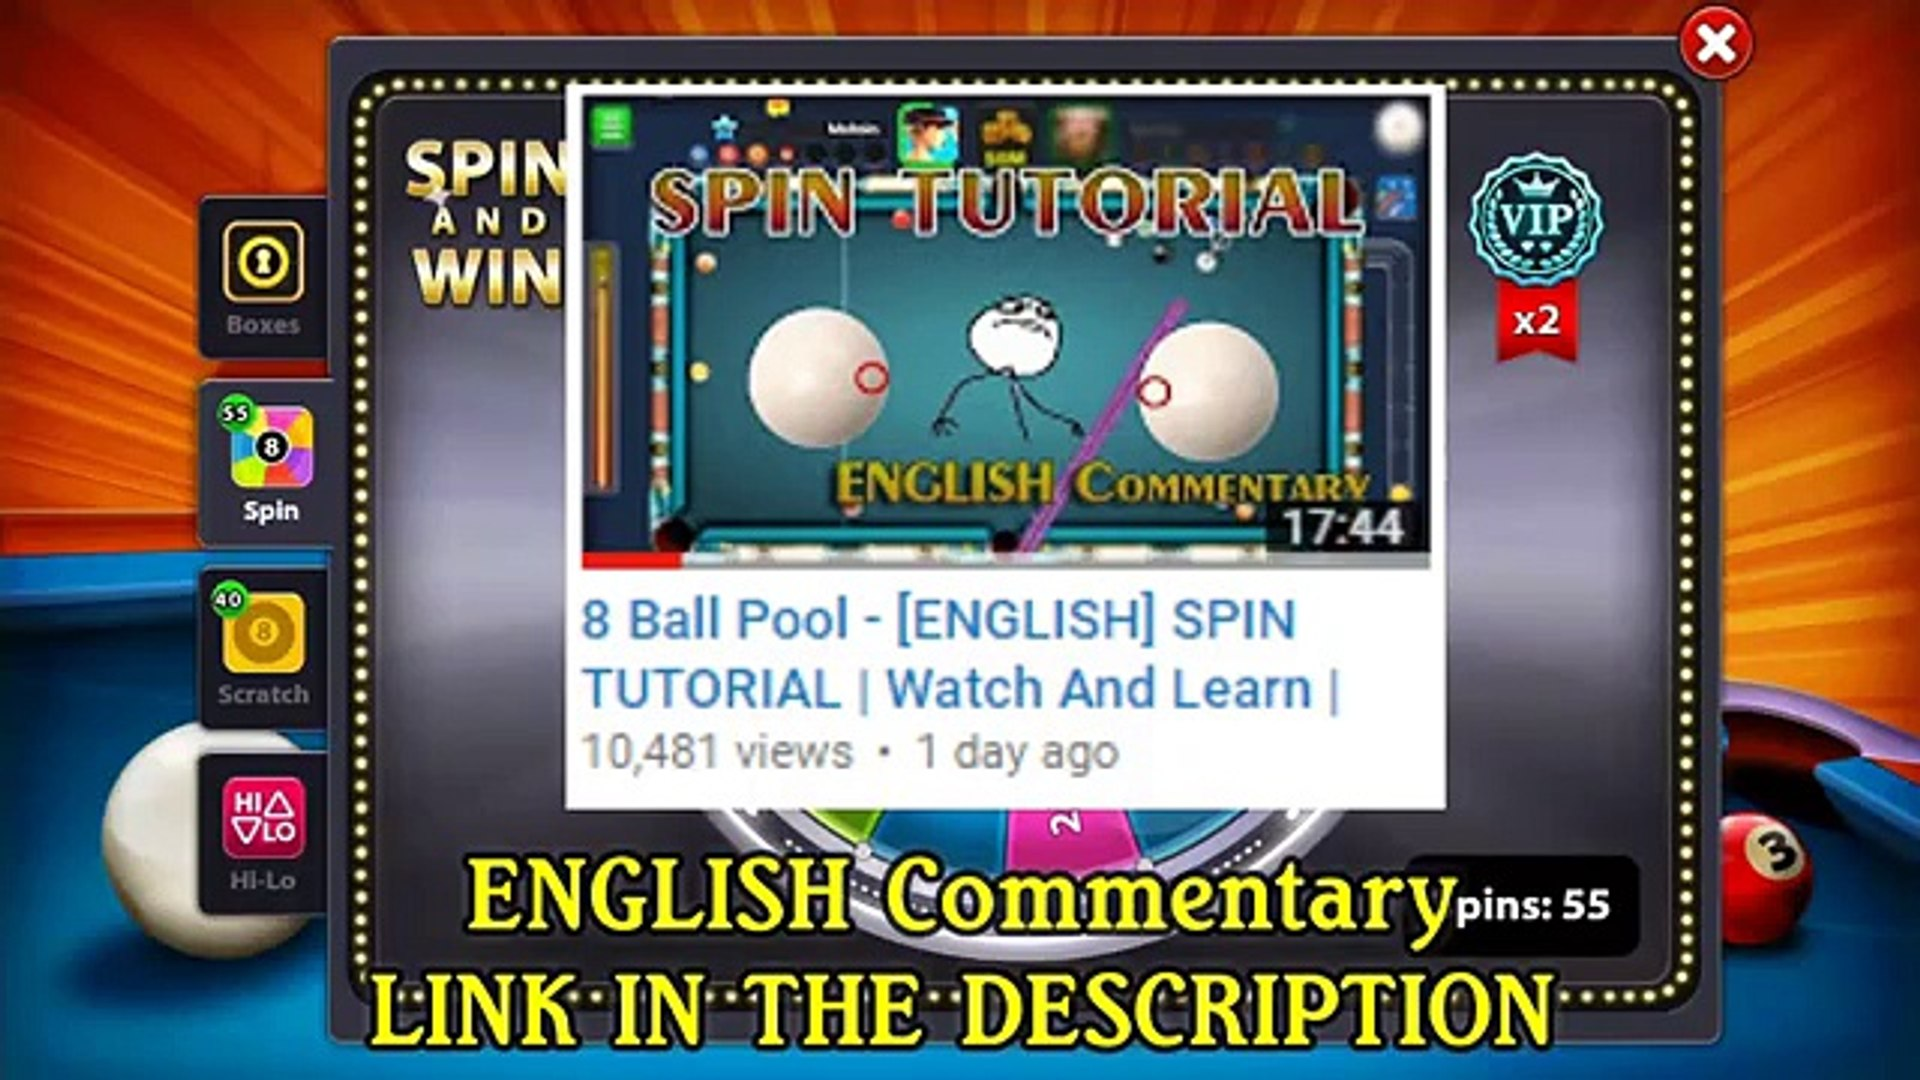 8 Ball Pool - [URDU/HINDI] SPIN TUTORIAL | Watch And Learn | Perfect Way To  Use Spin in 8 Ball Pool